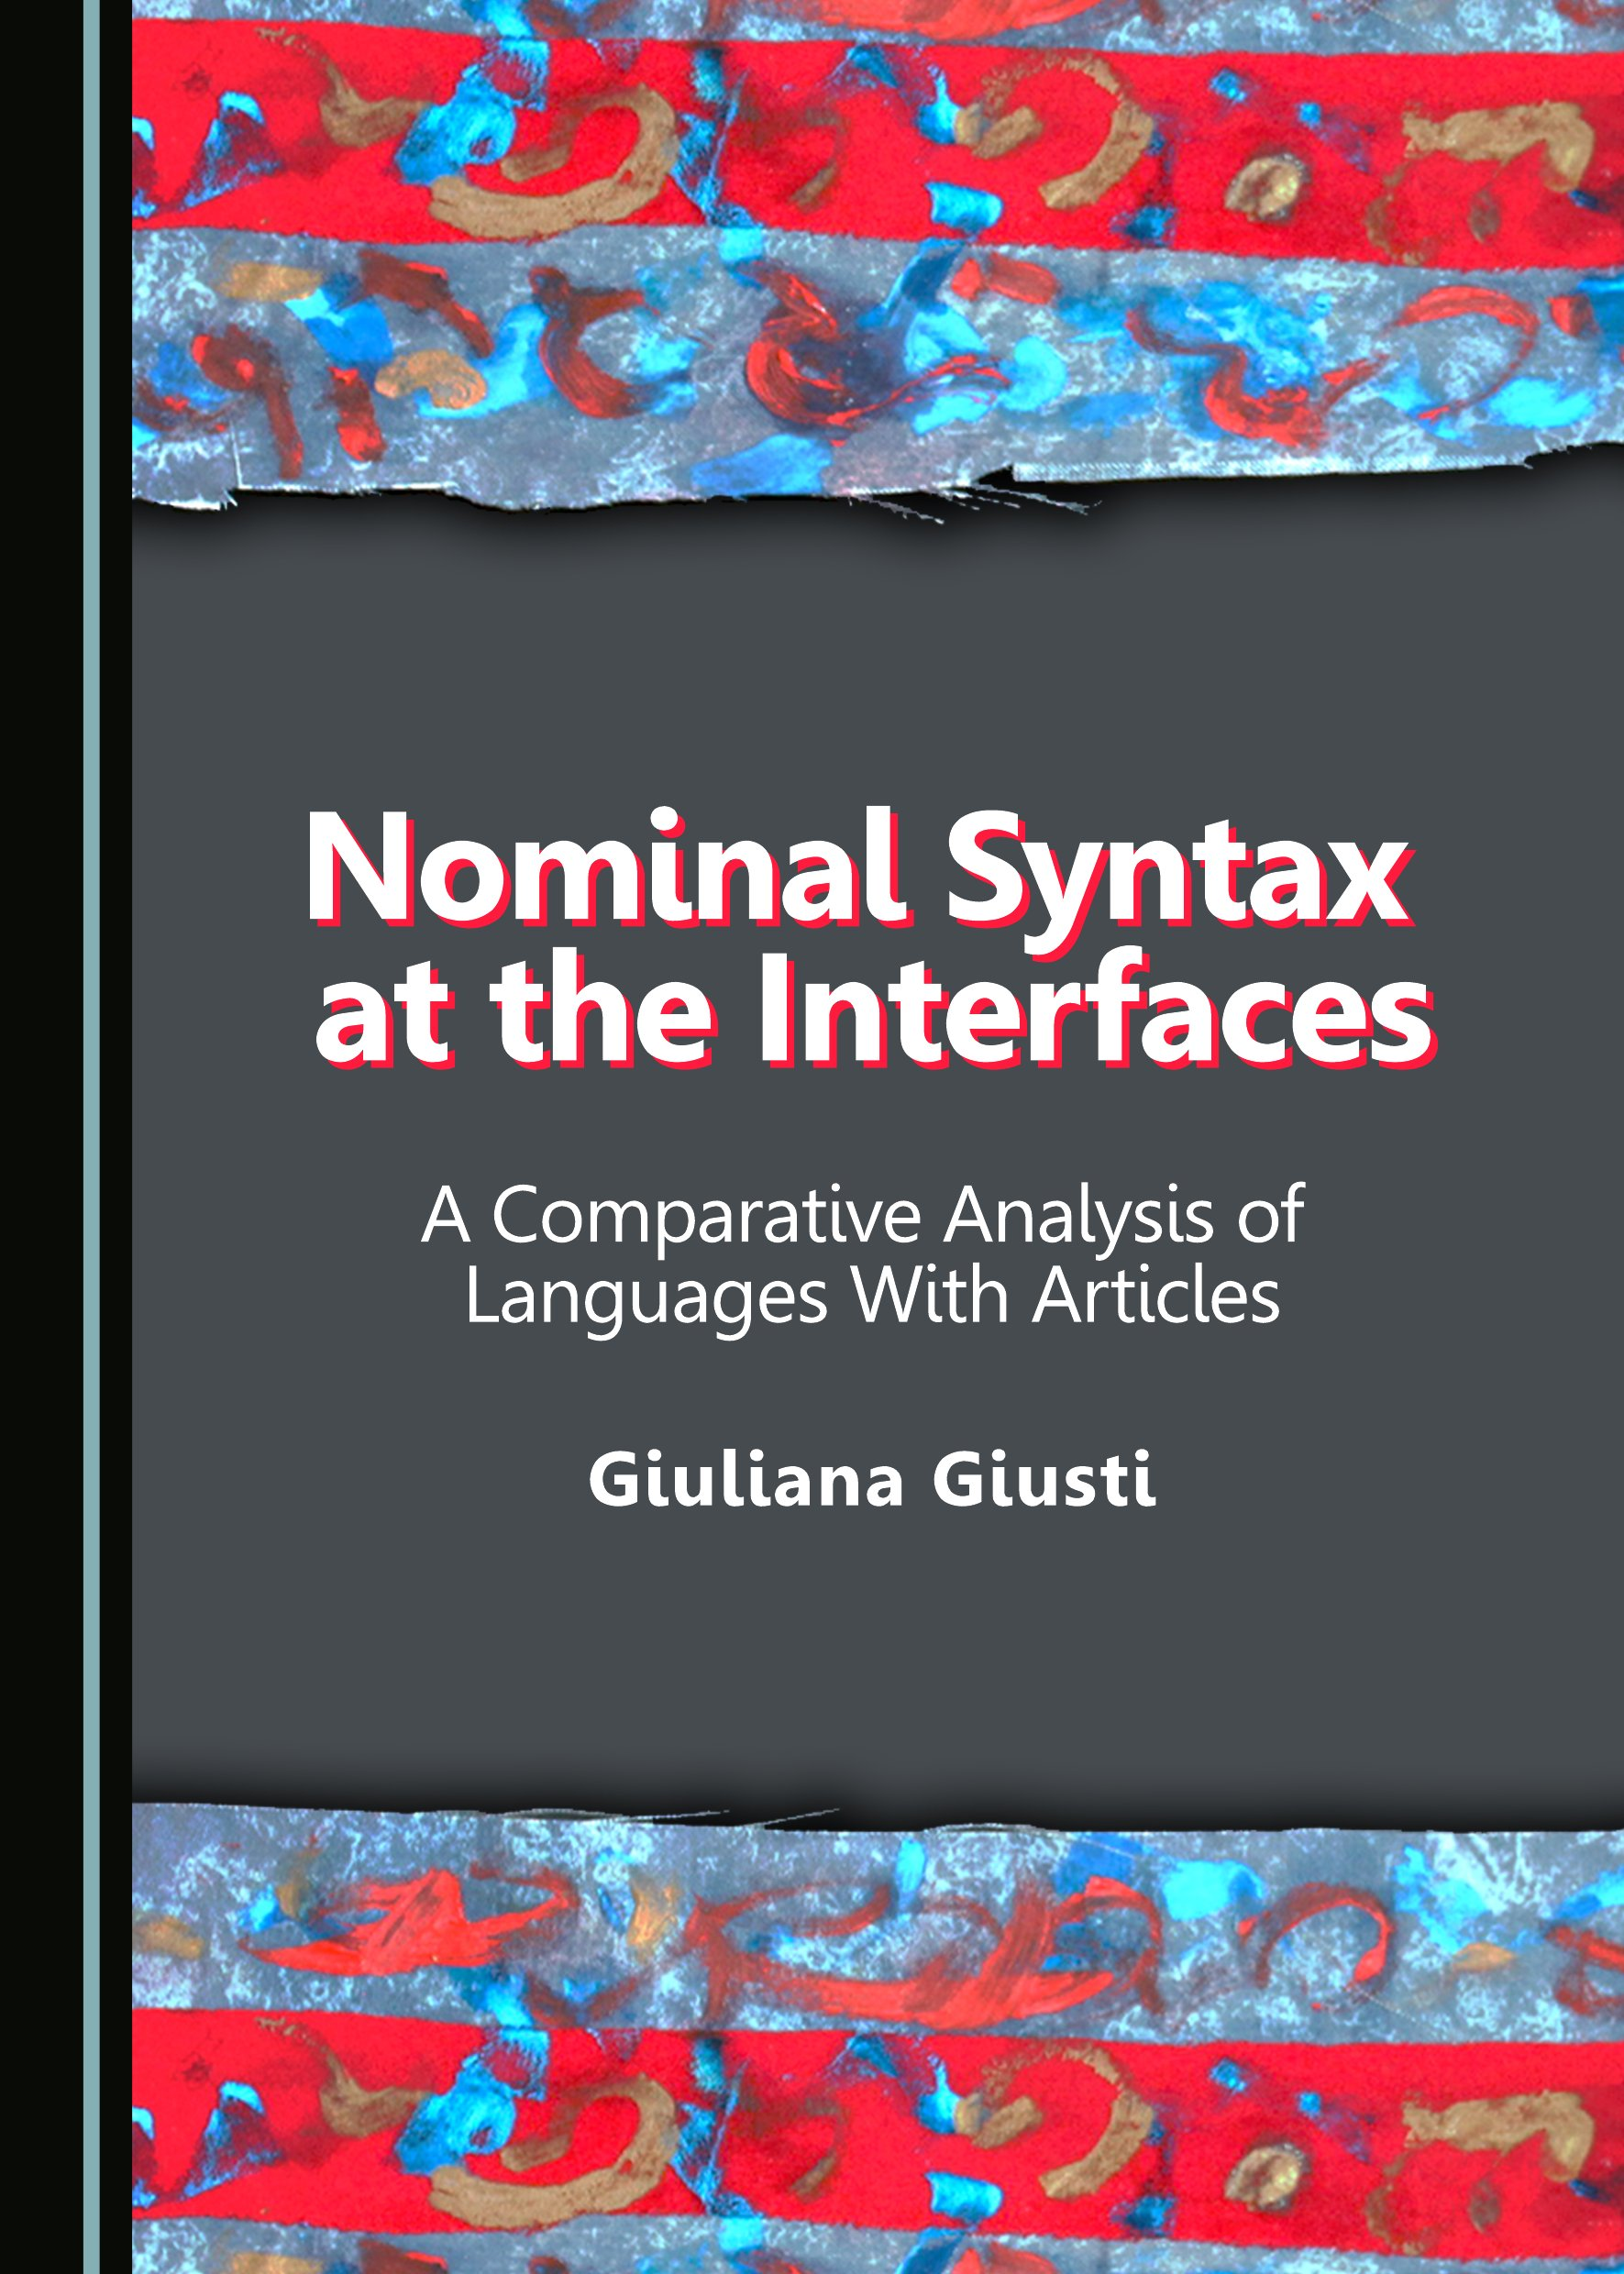 Nominal Syntax at the Interfaces: A Comparative Analysis of Languages With Articles